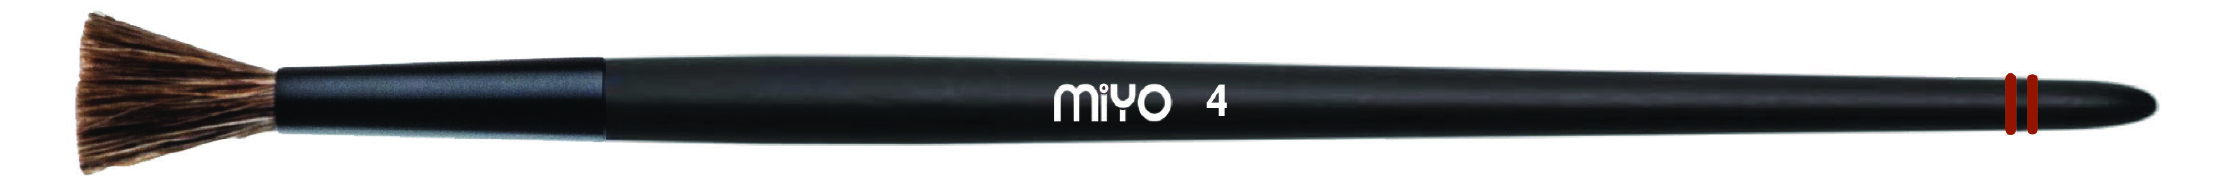 MiYO Brush #4